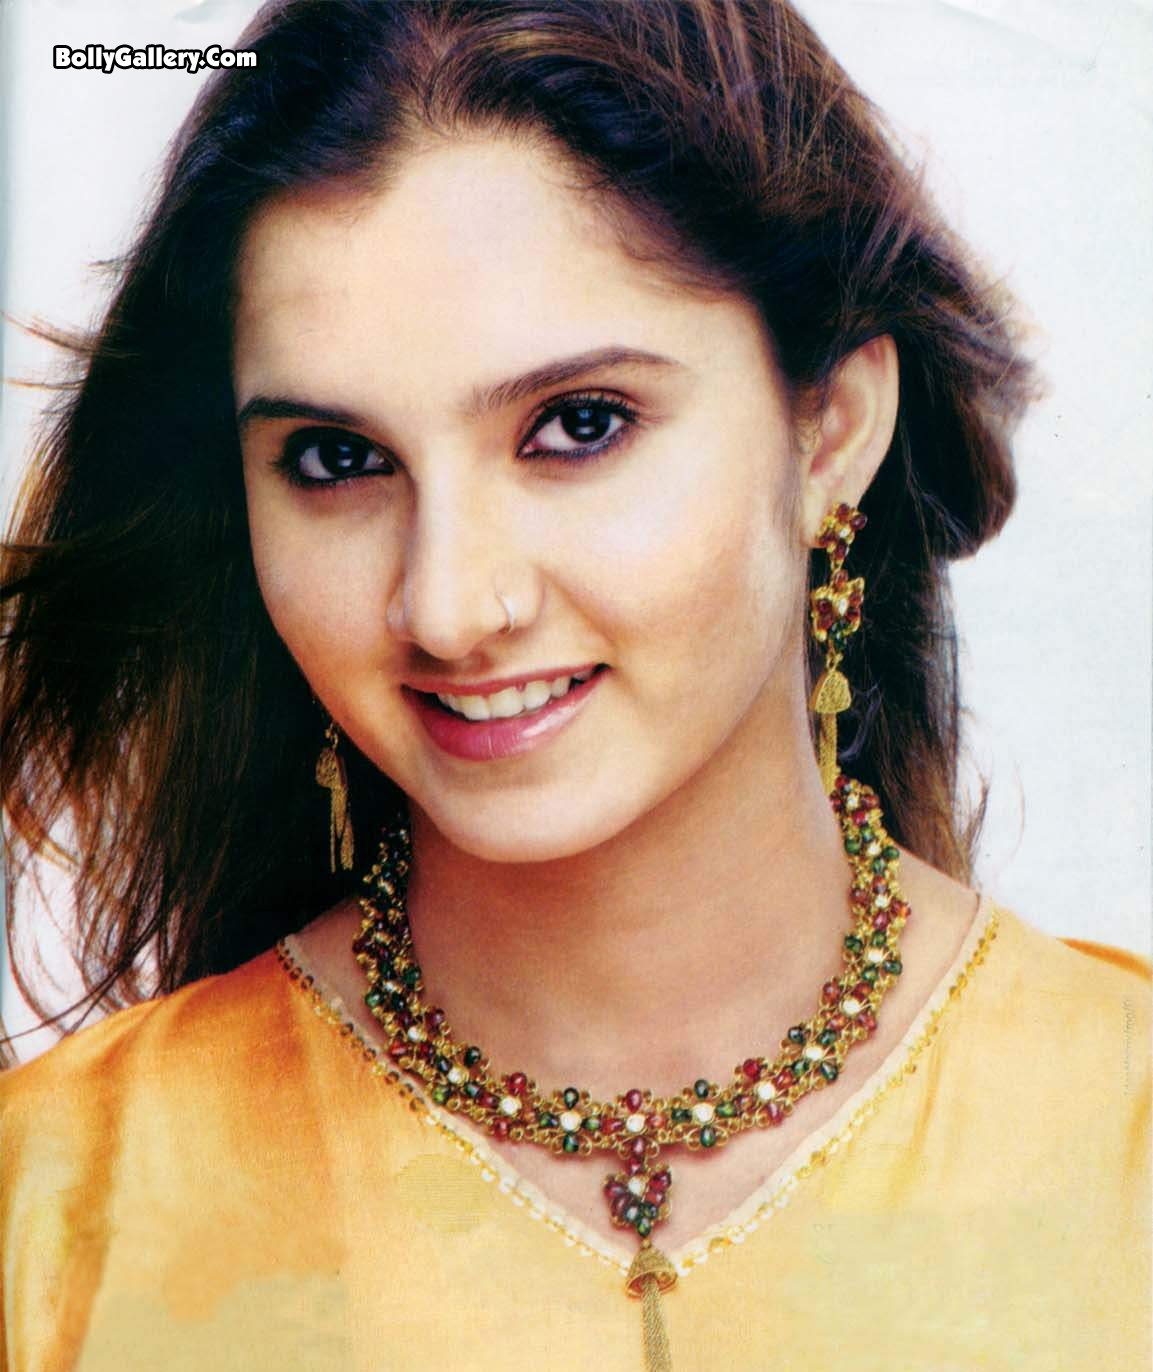 1153x1372 - Sania Mirza Wallpapers 28